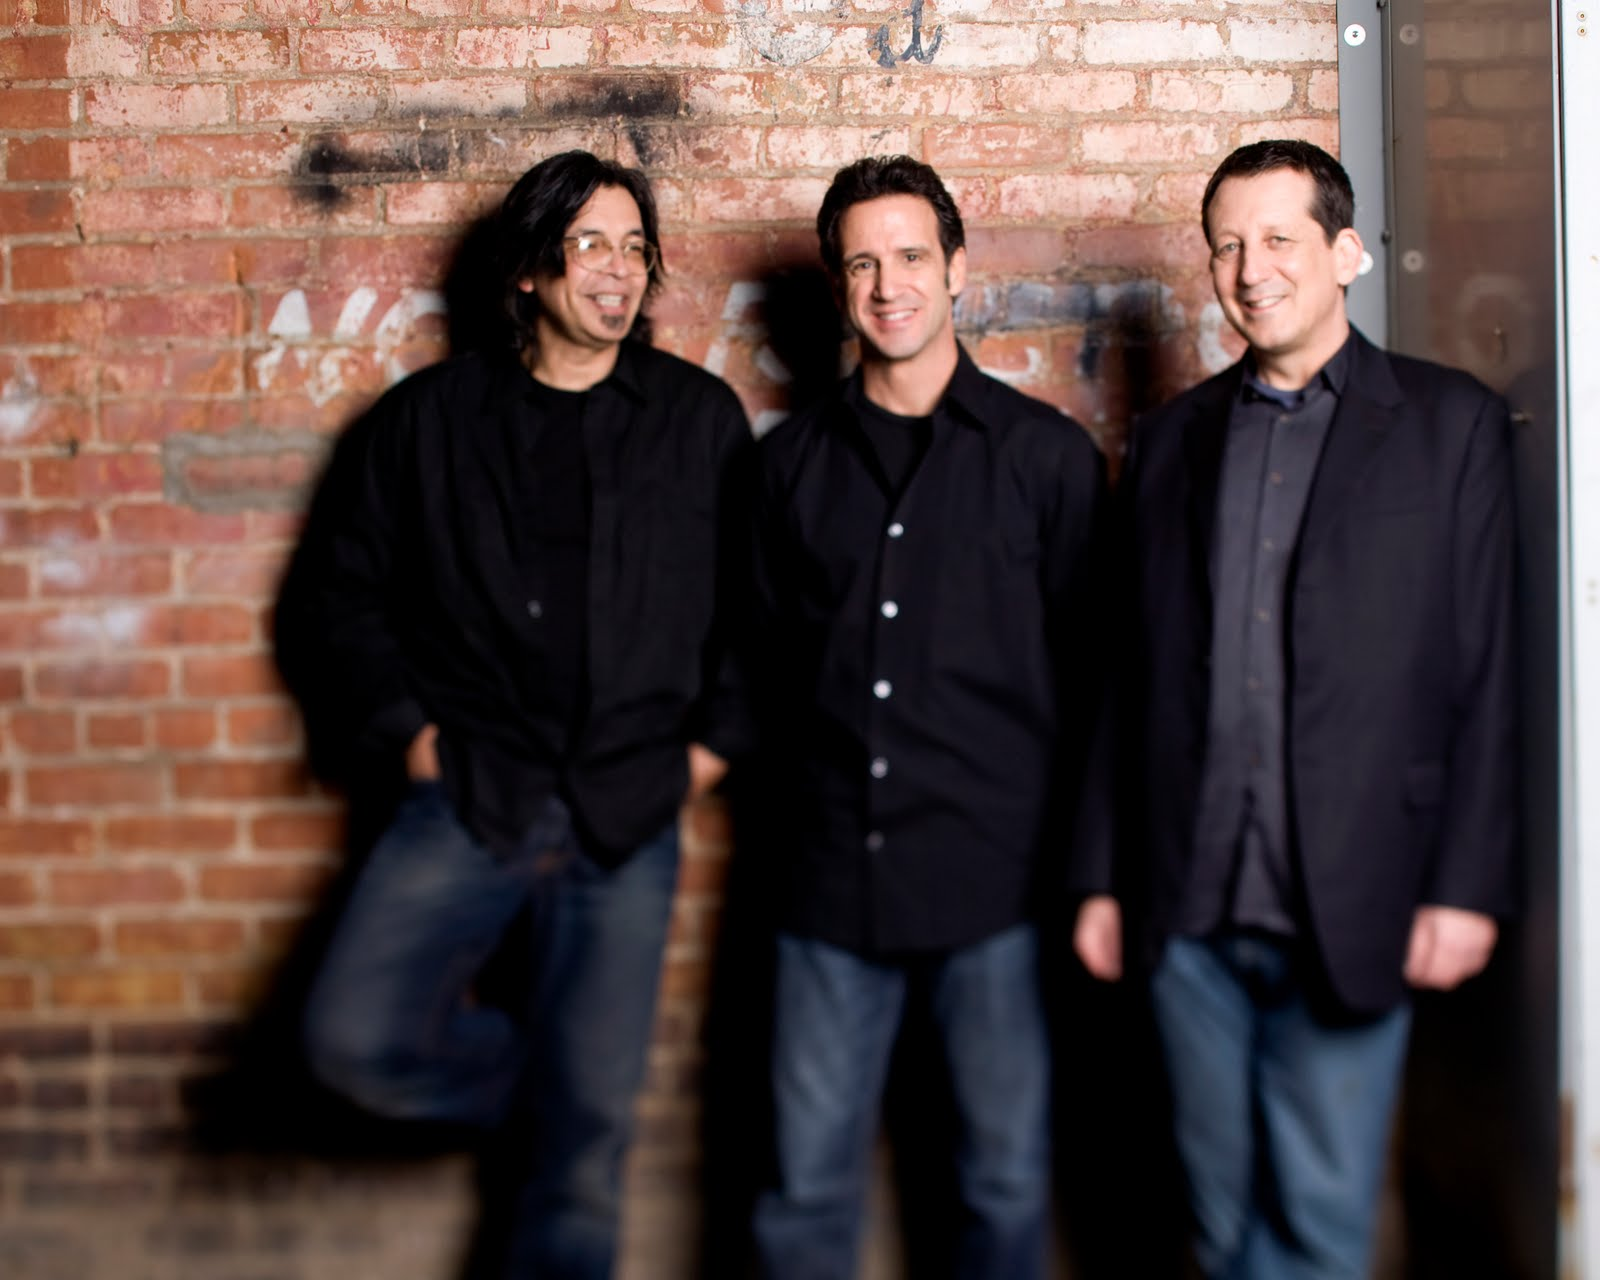 Jeff Lorber Bishop Arts Theater Center